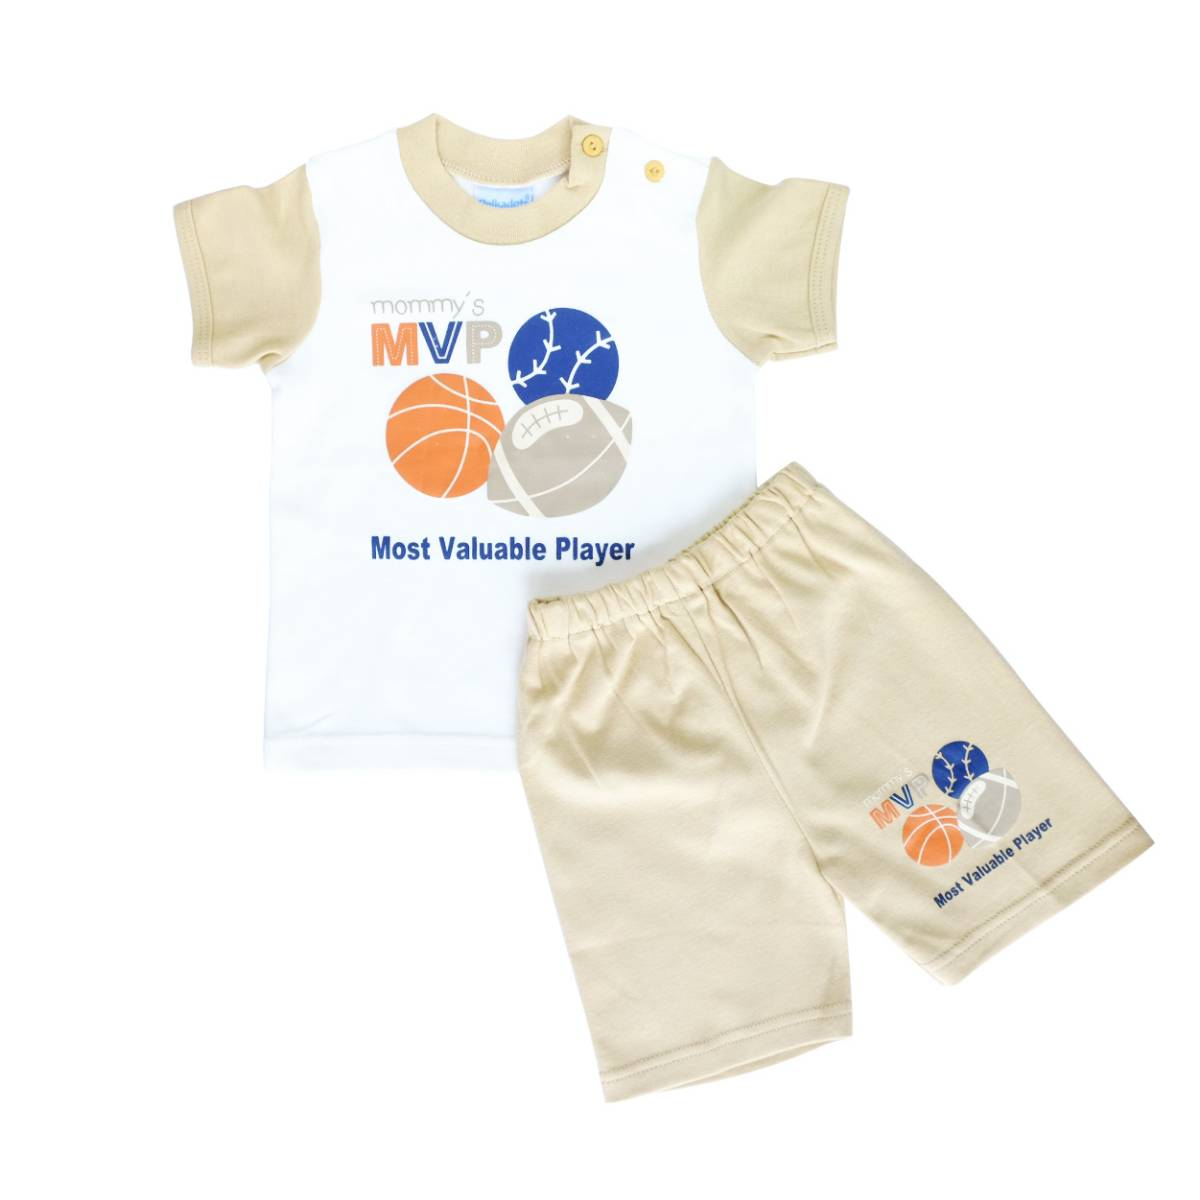 Baju Bayi Setelan Motif Mommy's Most Valuable Player1